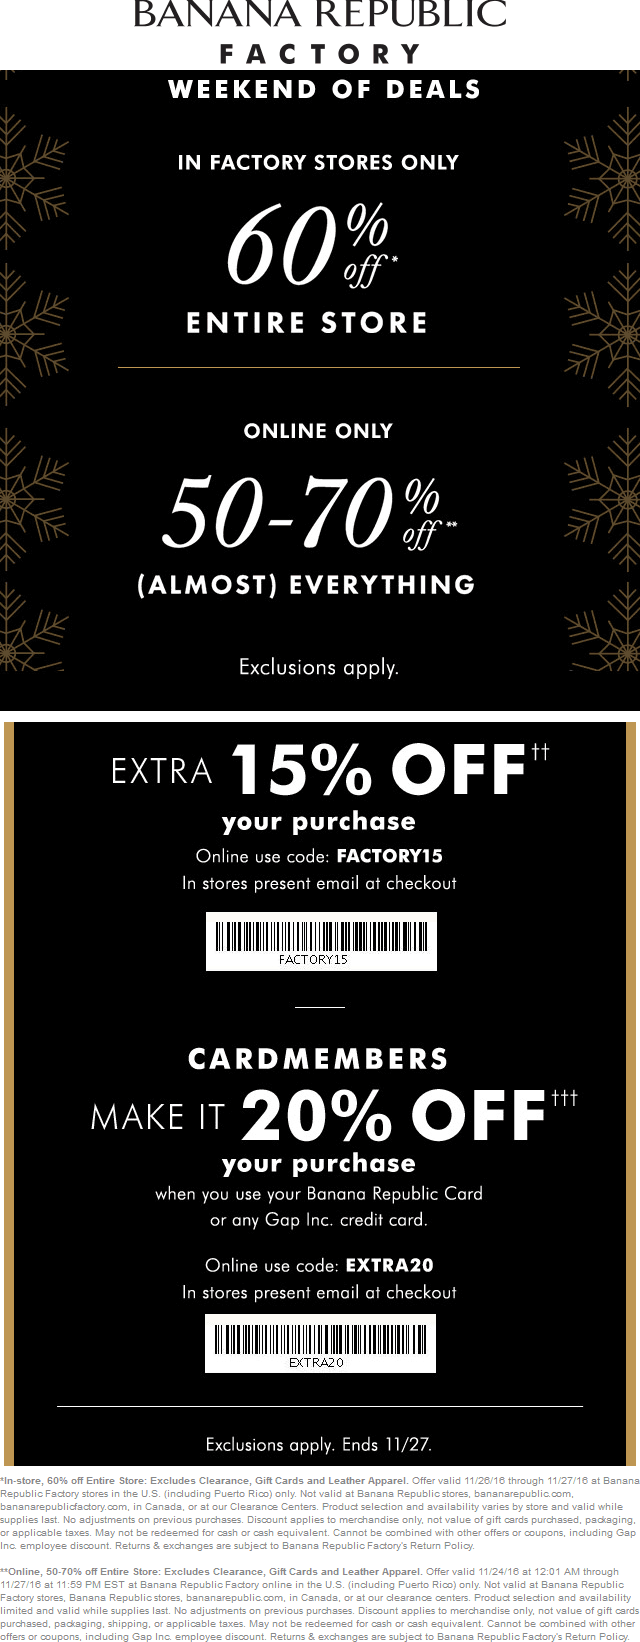 BananaRepublicFactory.com Promo Coupon Extra 60% off everything & more at Banana Republic Factory, 50-70% online